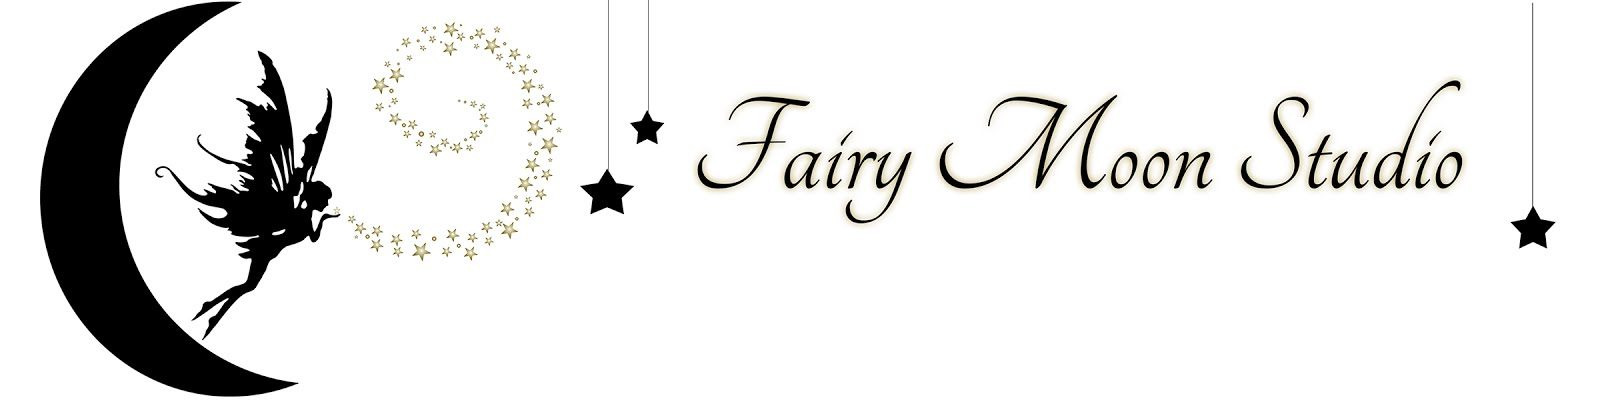 FairyMoonStudio